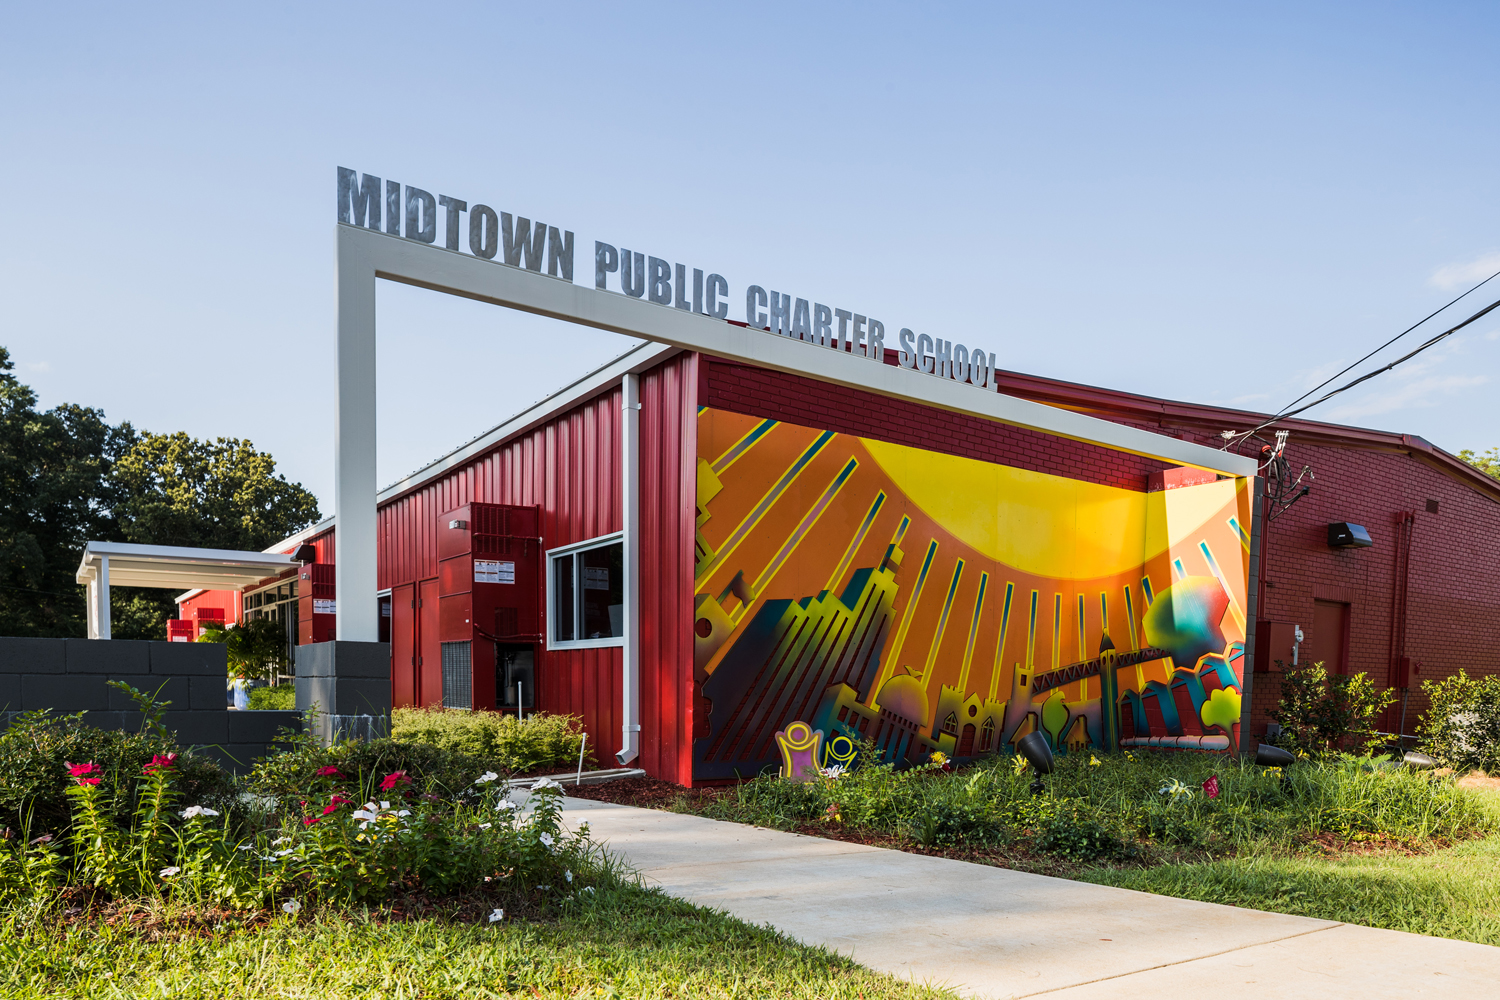 Midtown public charter school wier boerner allin wier for Architecture firms jackson ms